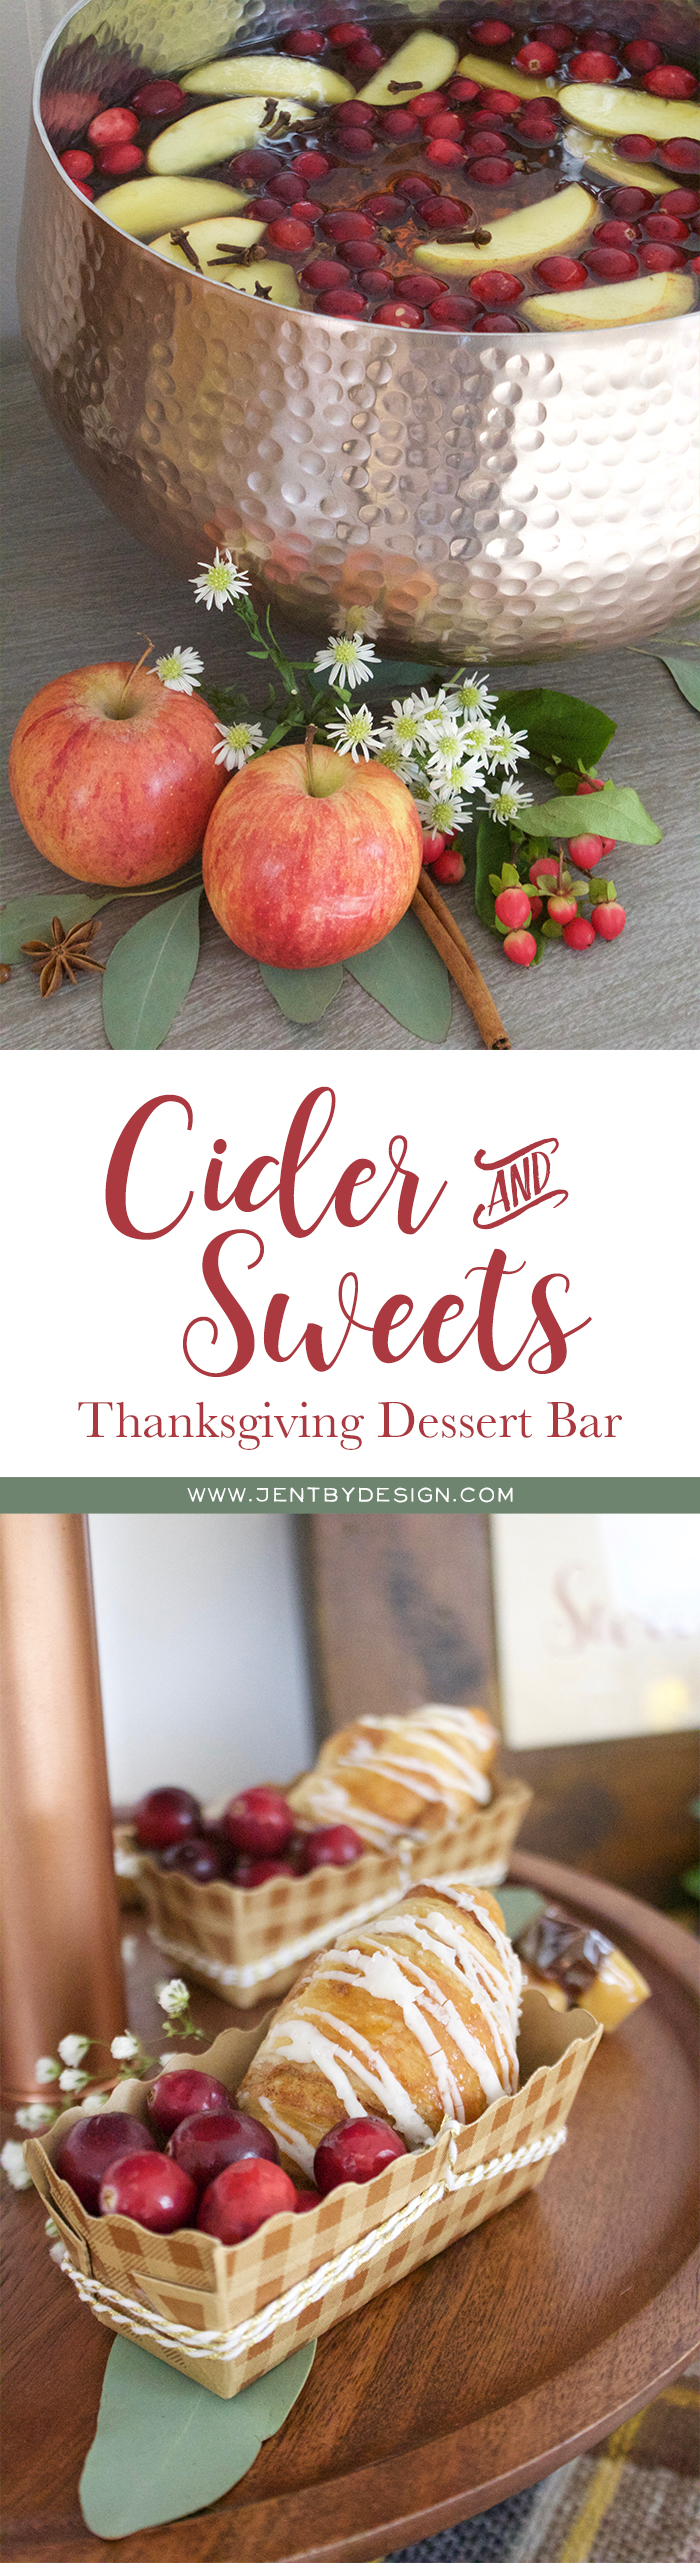 Cider and Sweets - Thanksgiving Dessert Bar